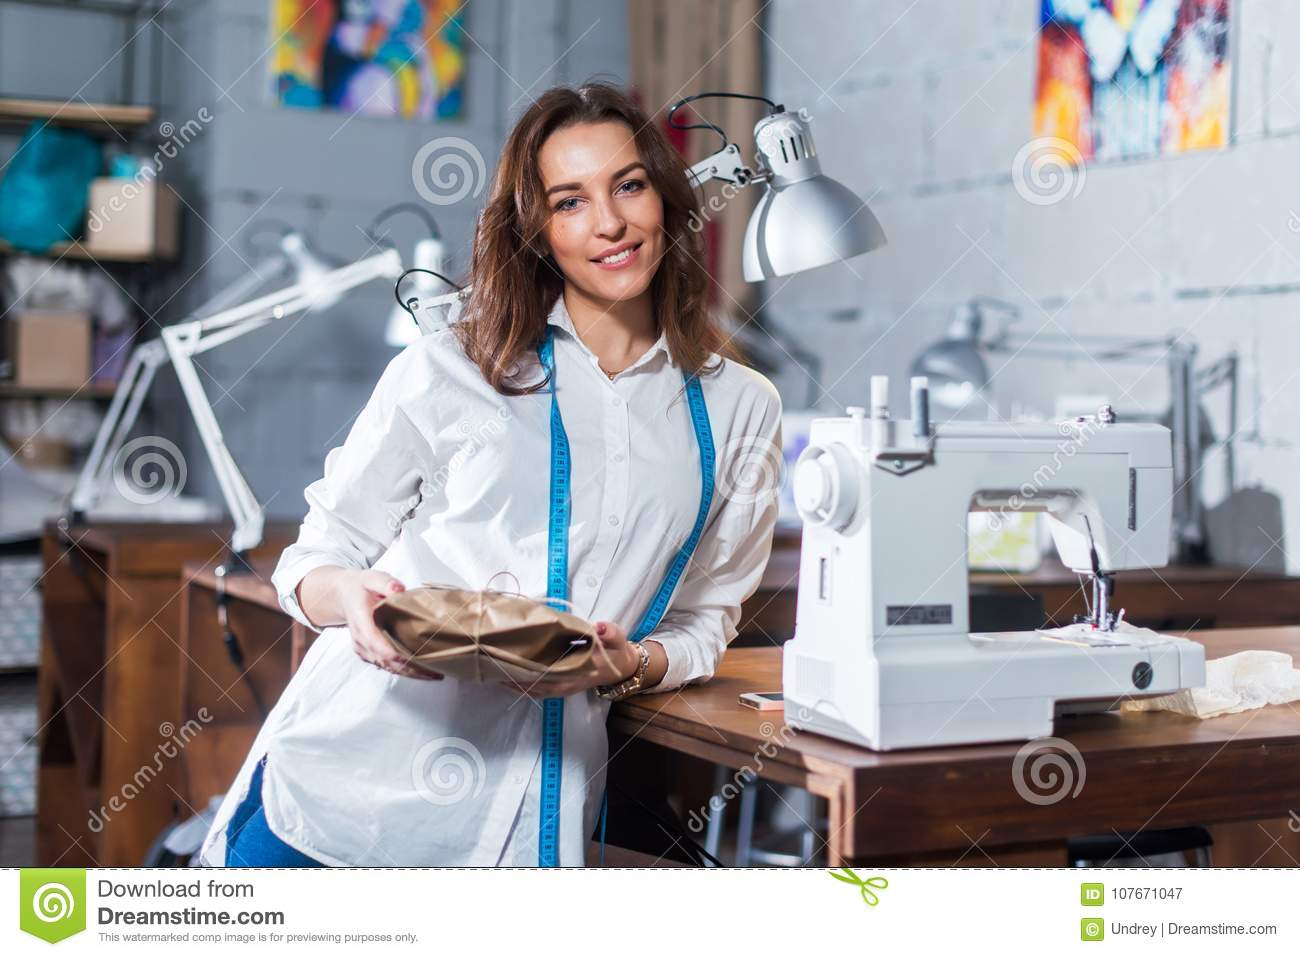 Portrait Of Smiling European Fashion Designer Standing Next To Sewing Machine Holding A Gift Packed In Craft Paper In Stock Image Image Of Owner Garment 107671047